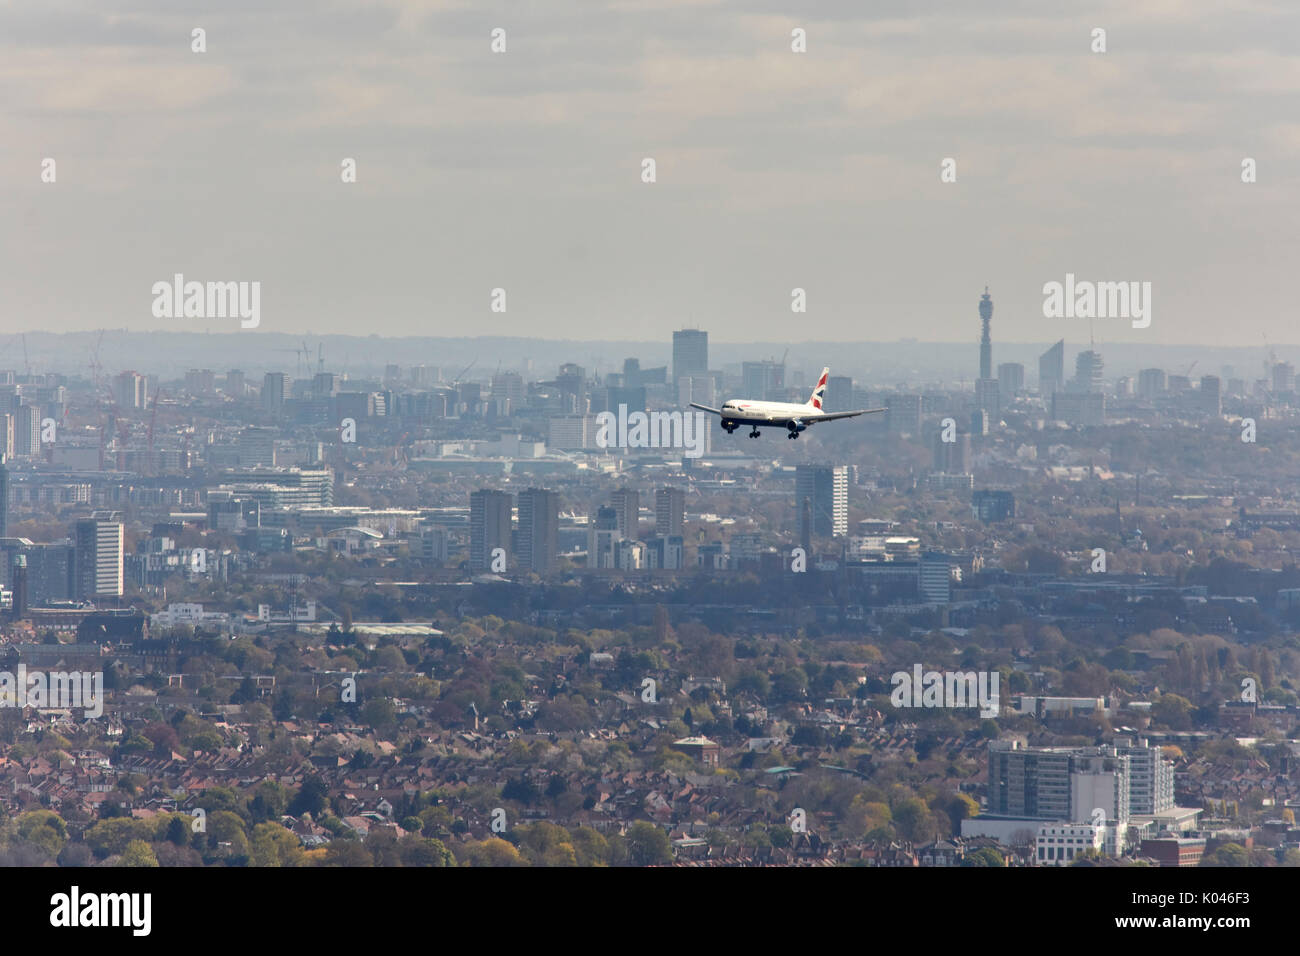 An aerial view of a commercial aircraft on approach to Heathrow with the skyline of London in the background - Stock Image